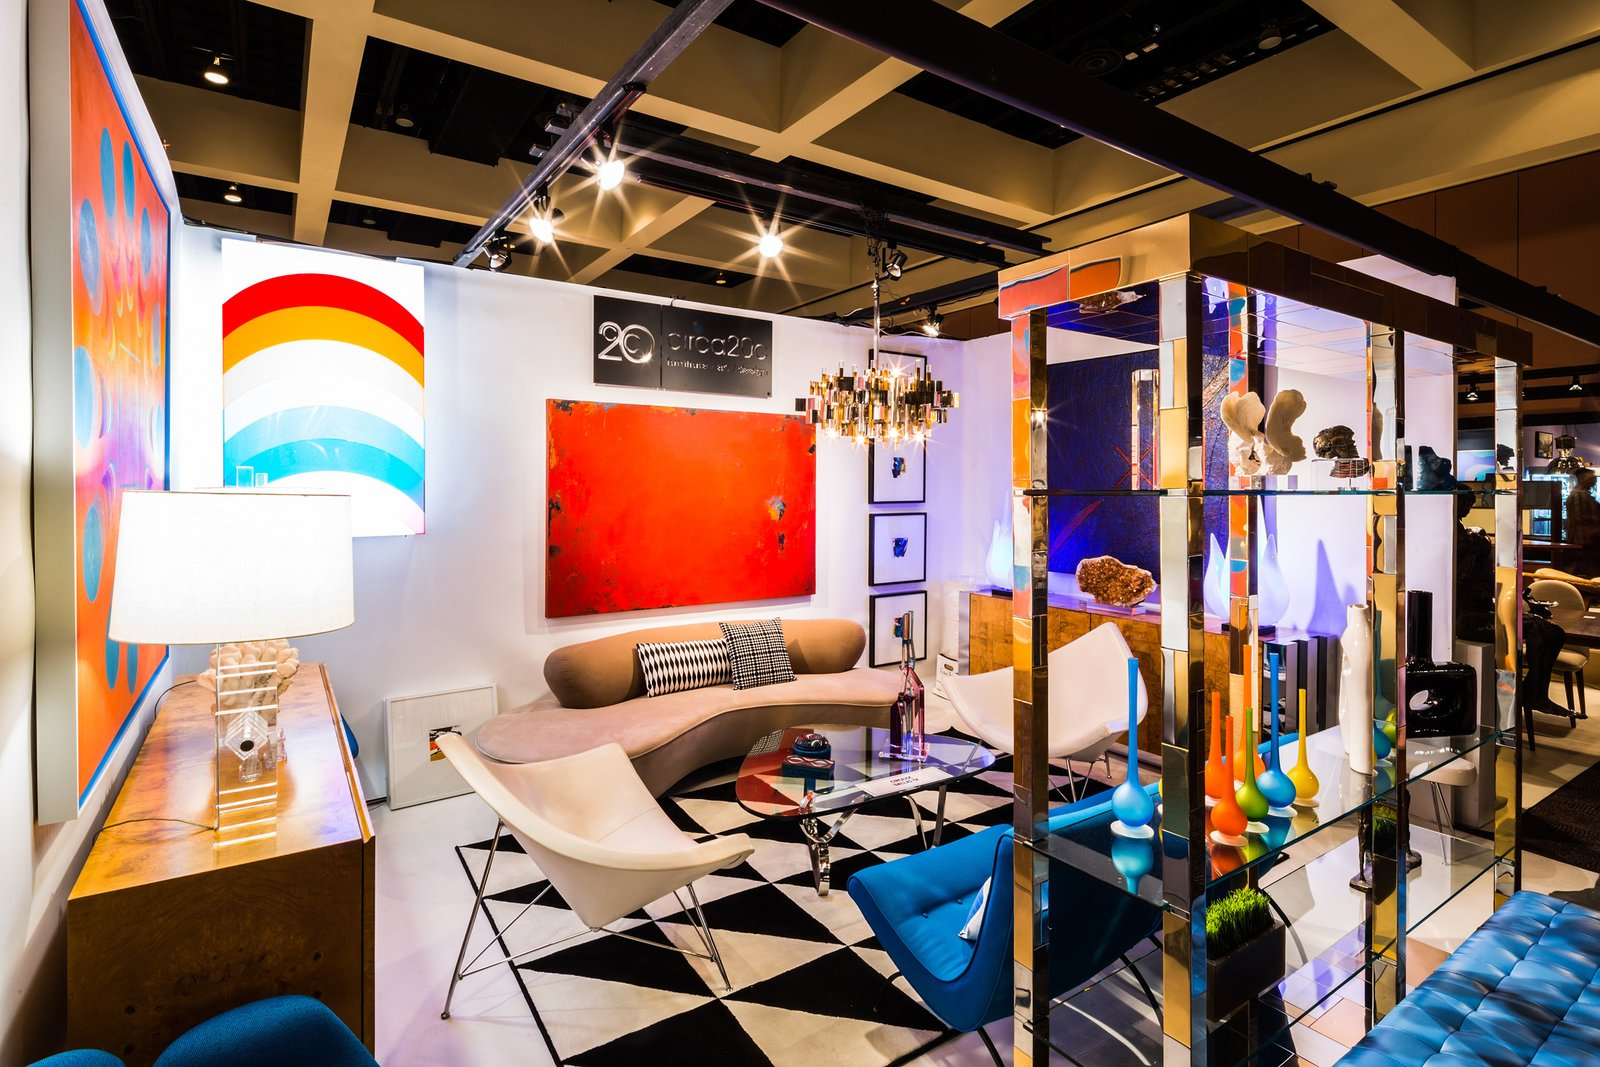 Living, Pendant, Track, Rug, Lamps, Table, Shelves, Sofa, and Chair The Annual Palm Springs Modernism Show & Sale  Best Living Track Shelves Photos from 10 Things You Shouldn't Miss at Modernism Week in Palm Springs